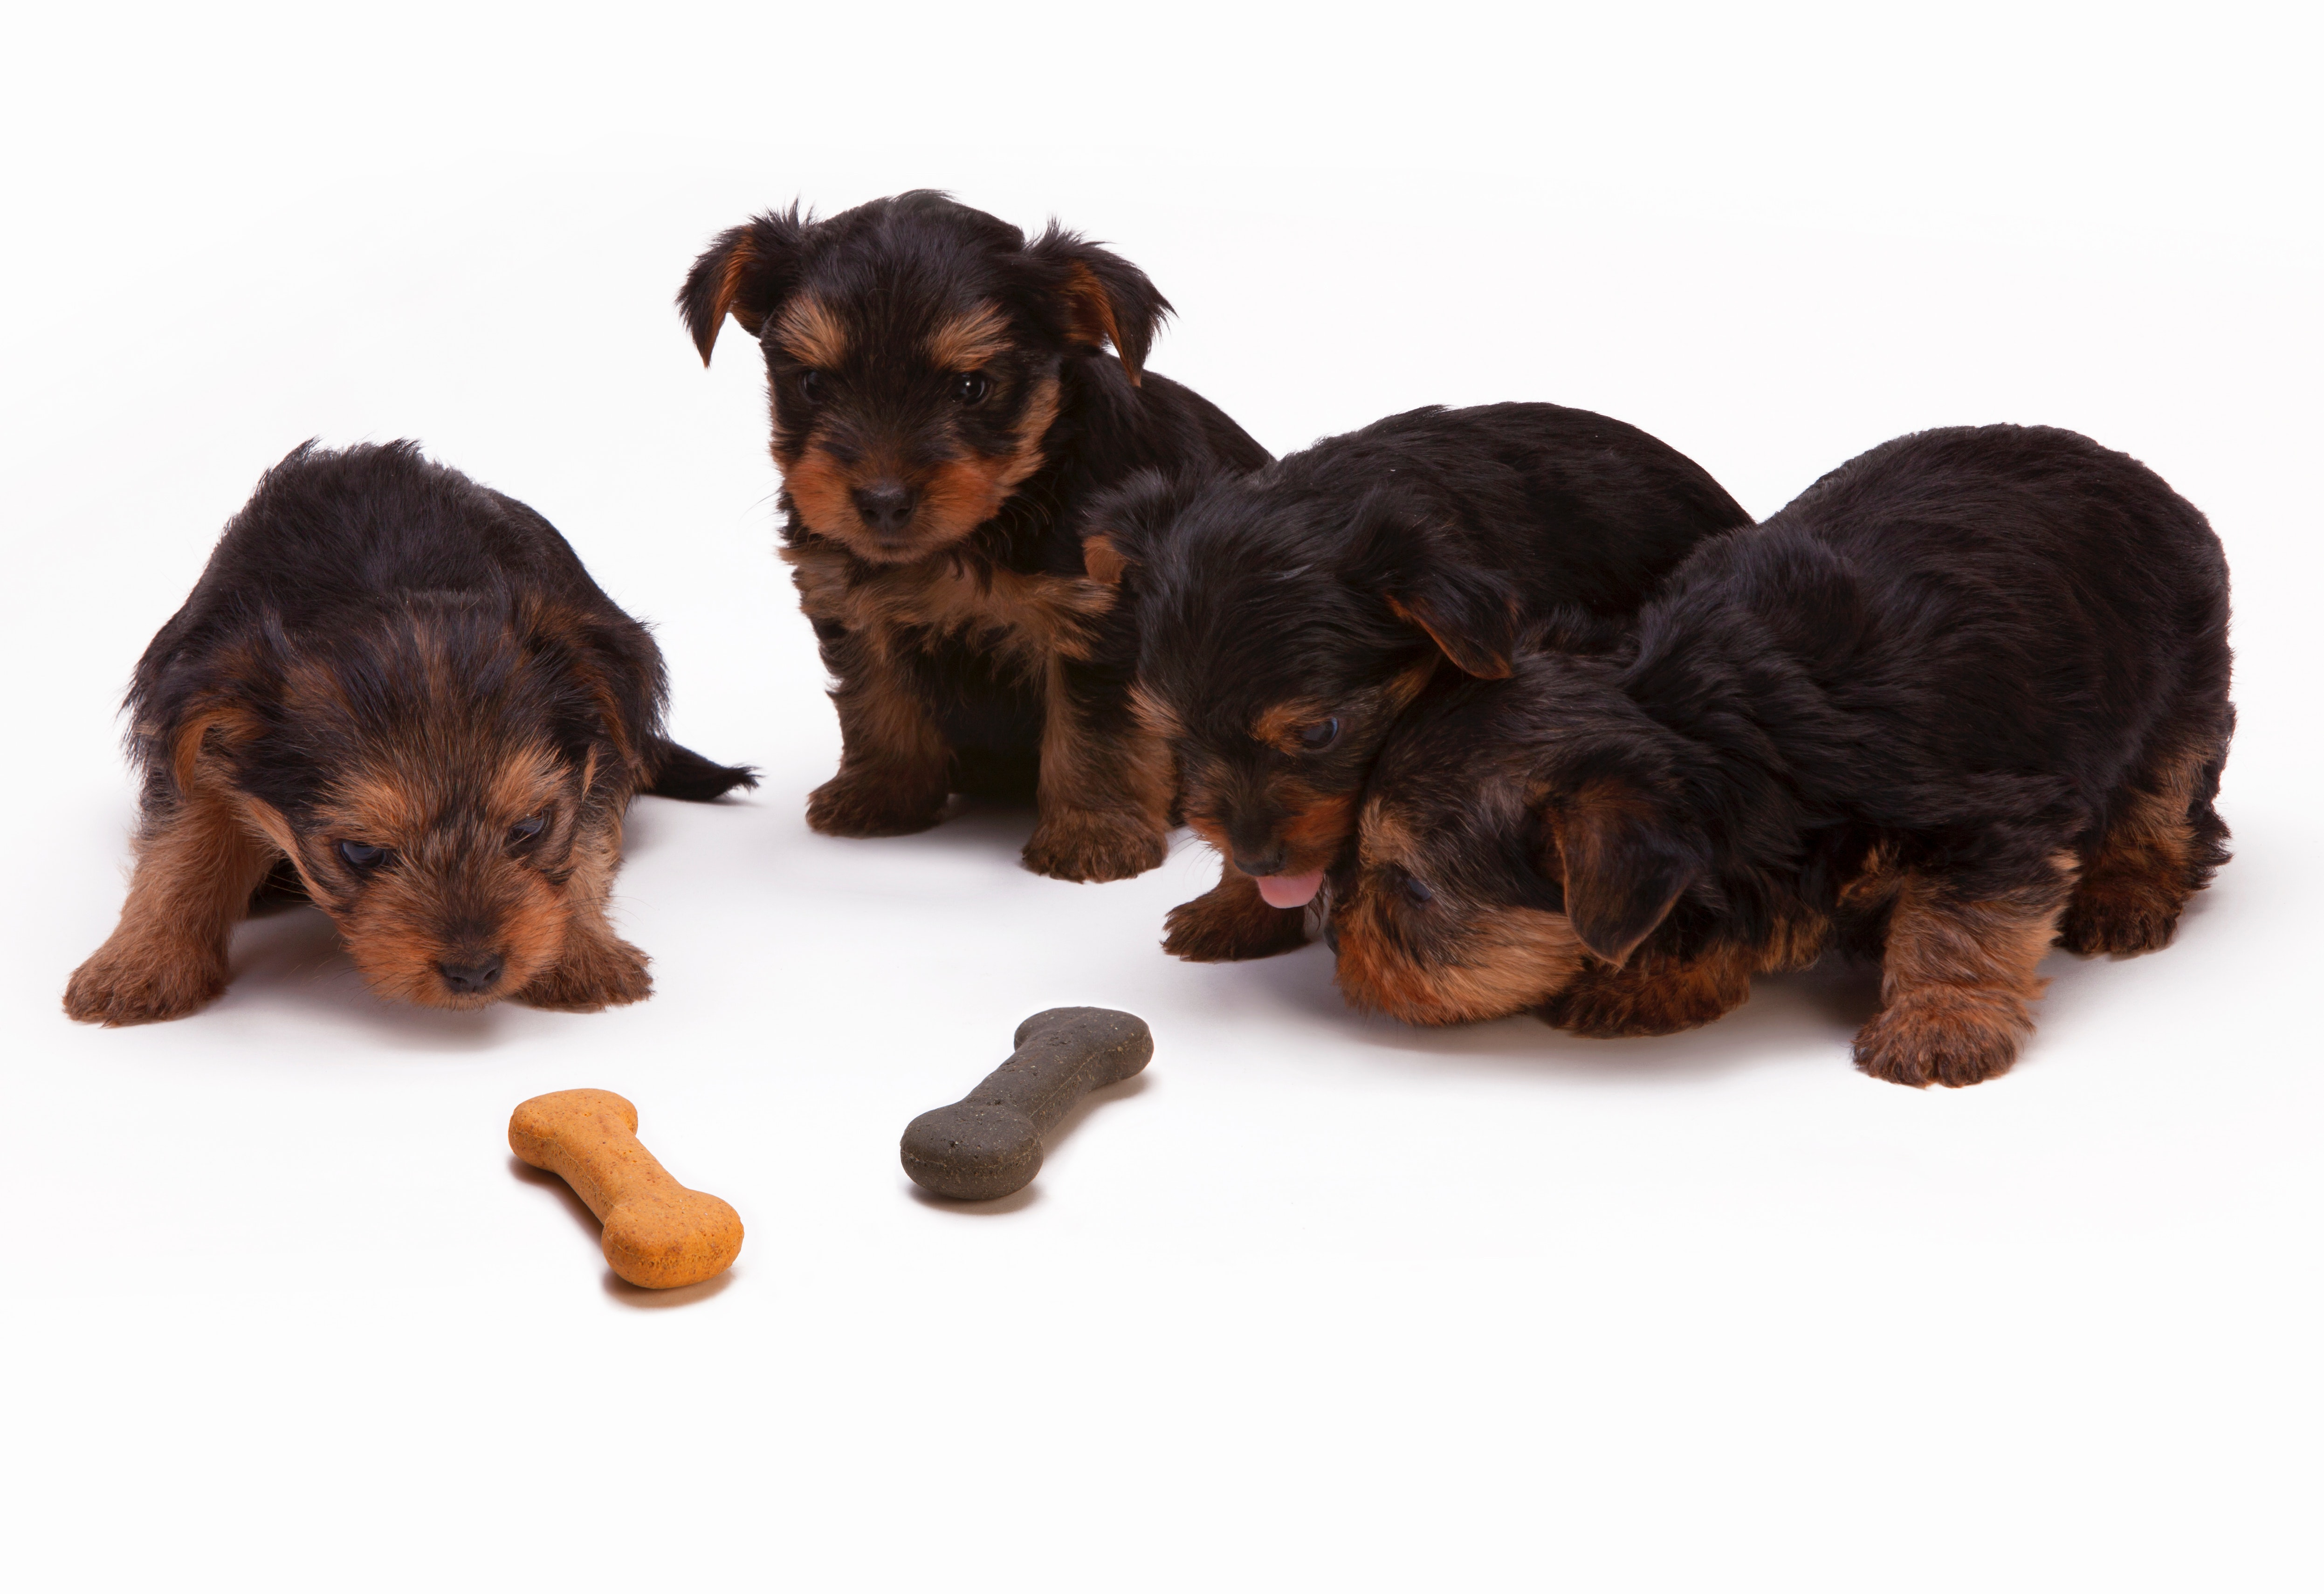 Four cute puppies smelling dry dog food